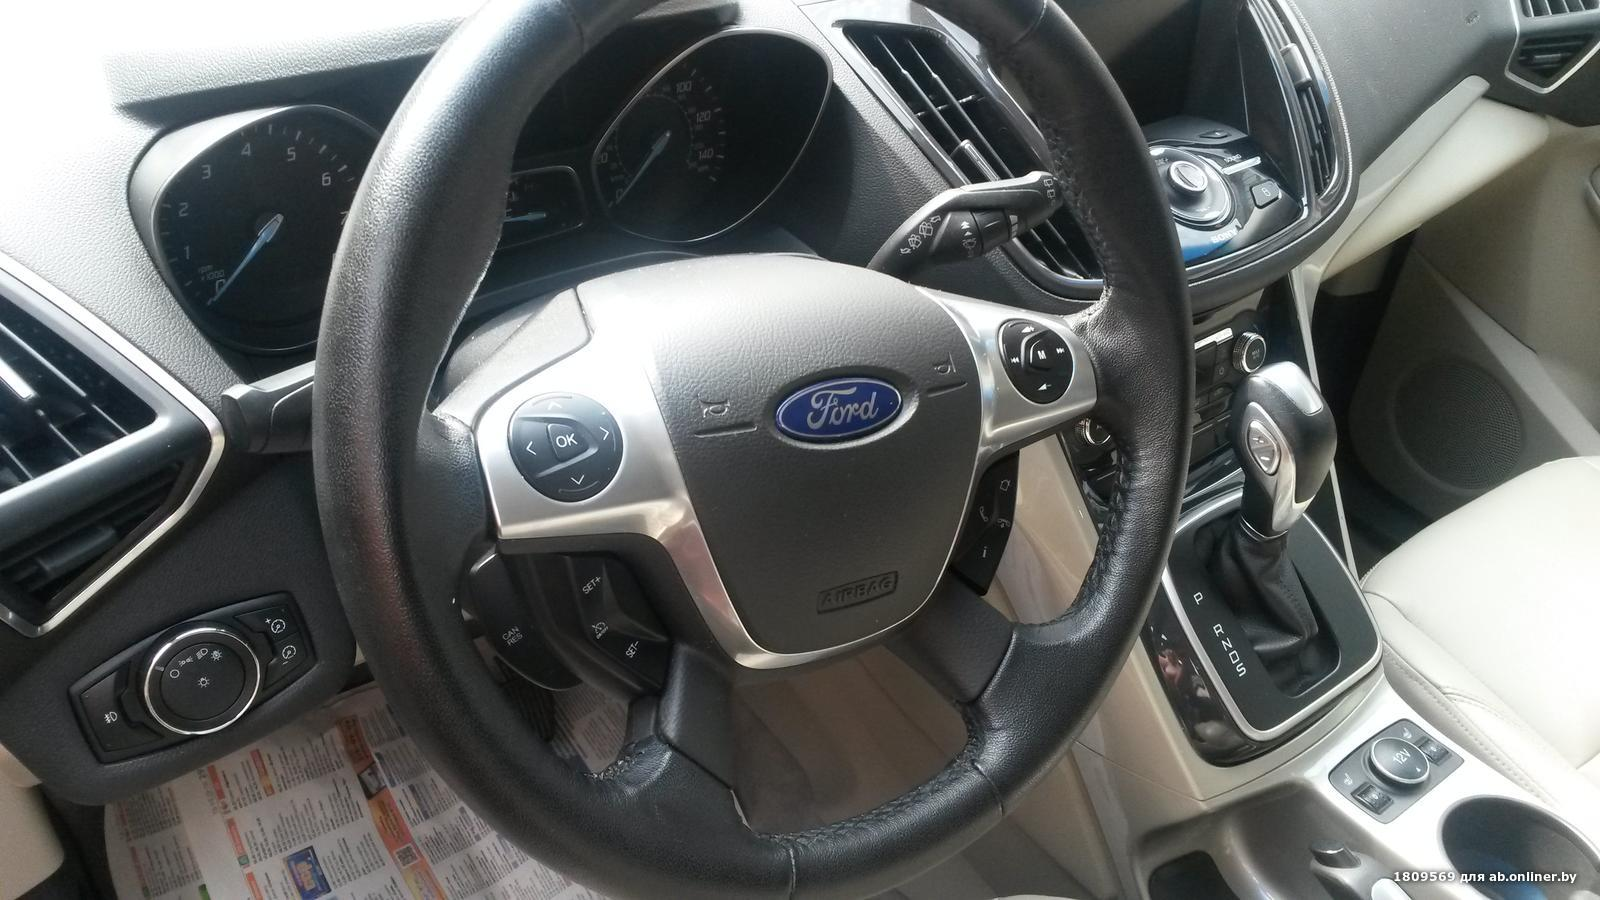 Ford Escape титаниум